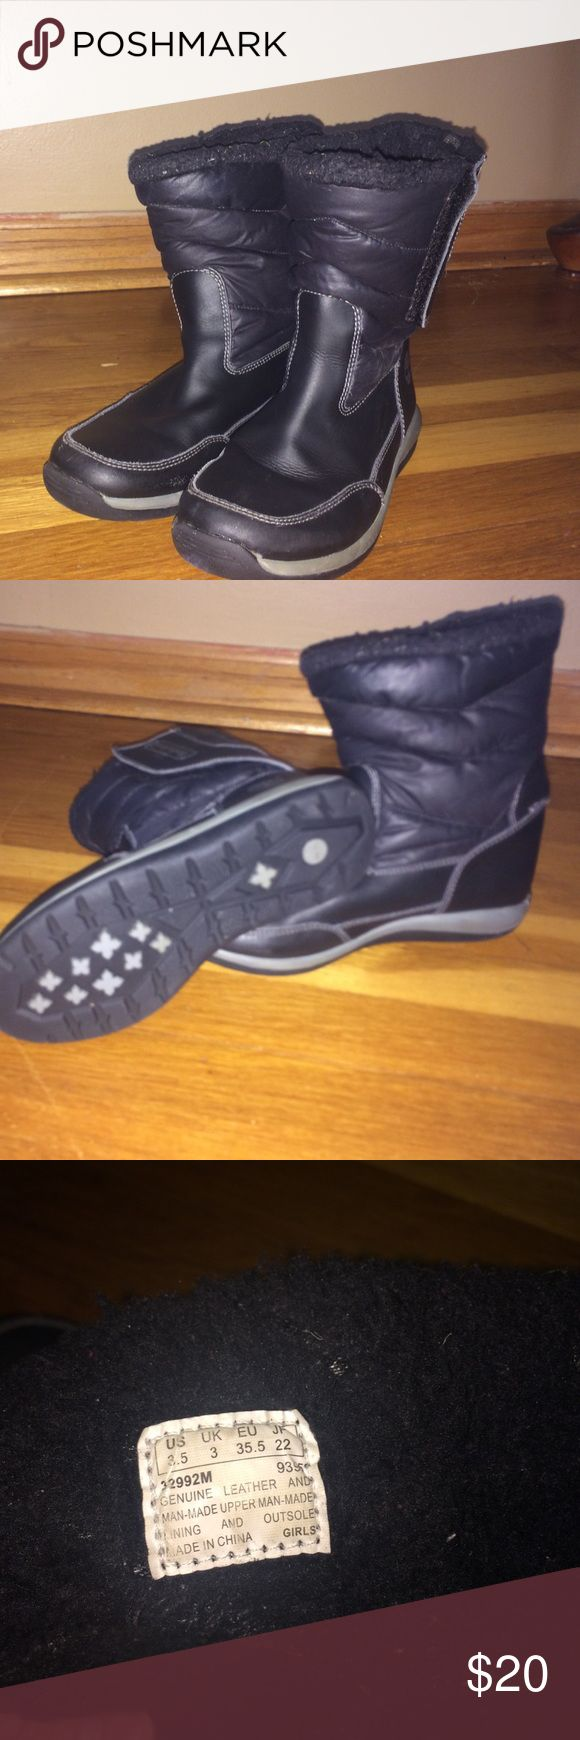 Girls Timberland boots 3.5 Girls Timberland boots, black color, size 3.5 used, good  condition,lower part made of leather Timberland Shoes Boots